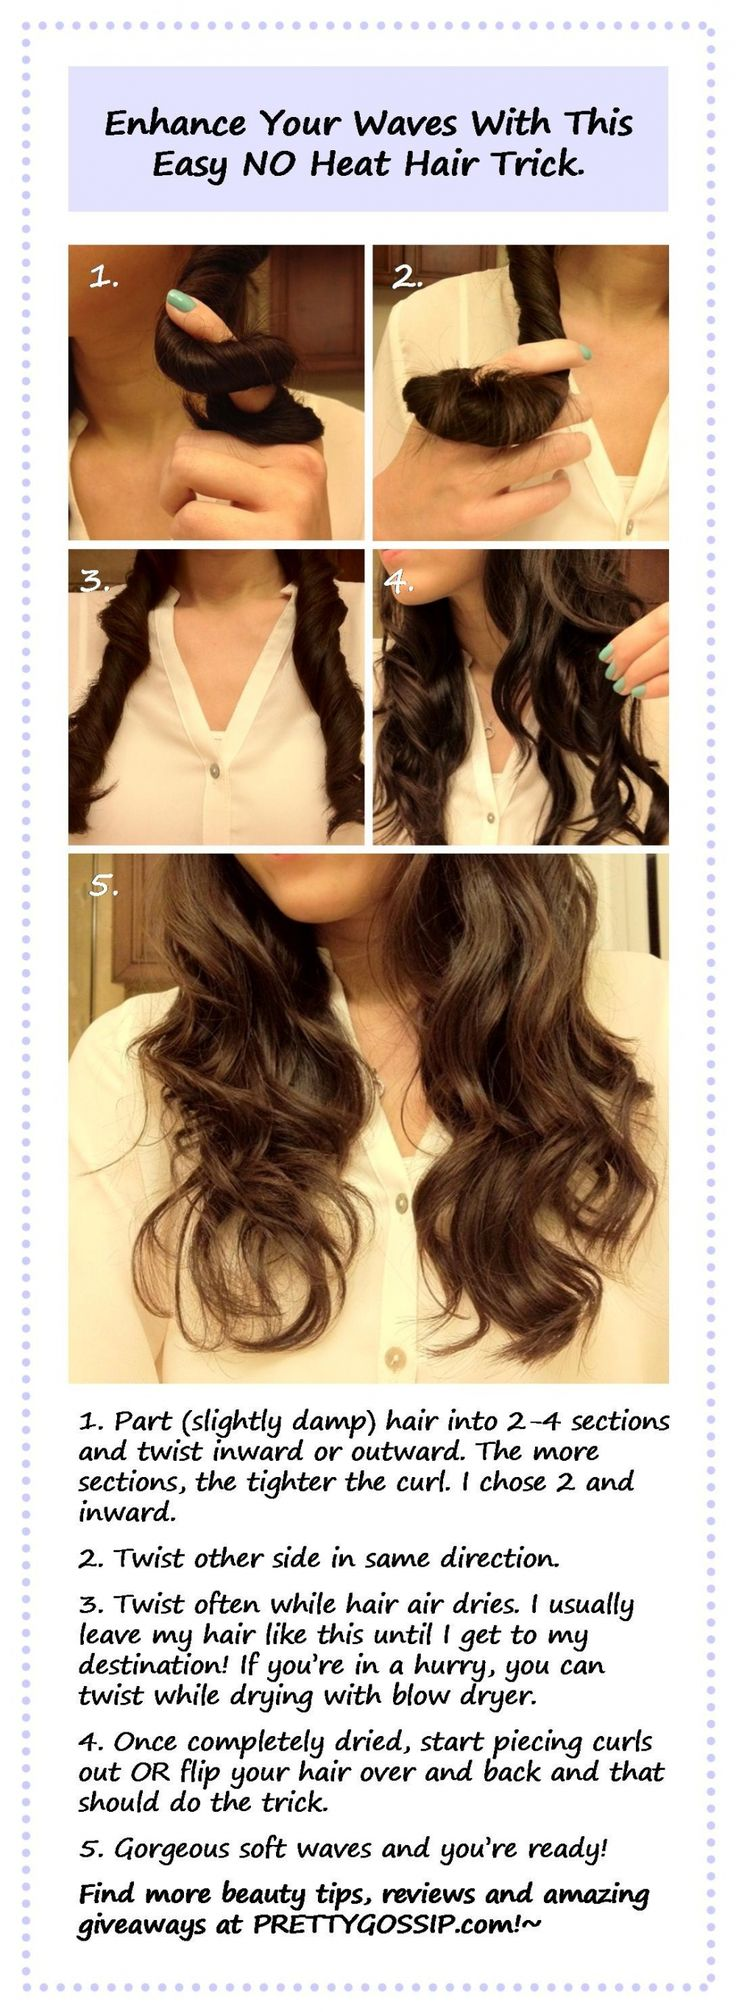 131 Best To Try Images On Pinterest Thoughts Healthy Living And 13 Killer Circuit Workouts You Can Do At Home Minqcom Enhance Your Waves With This Easy No Heat Hair Trick Soft